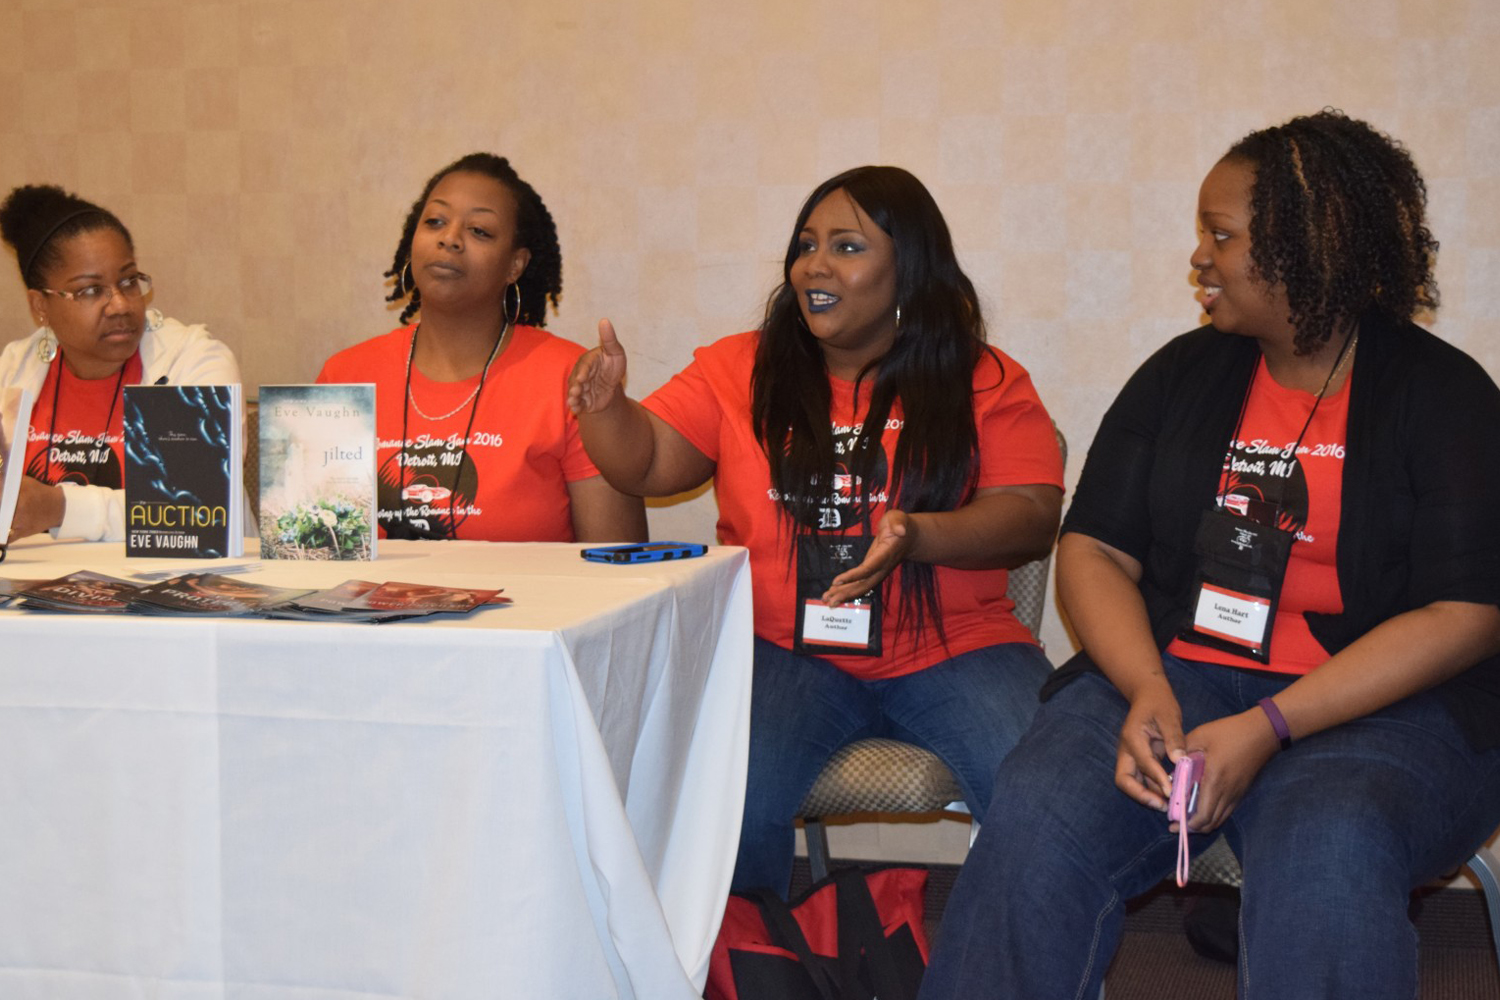 Black Author panel discussion